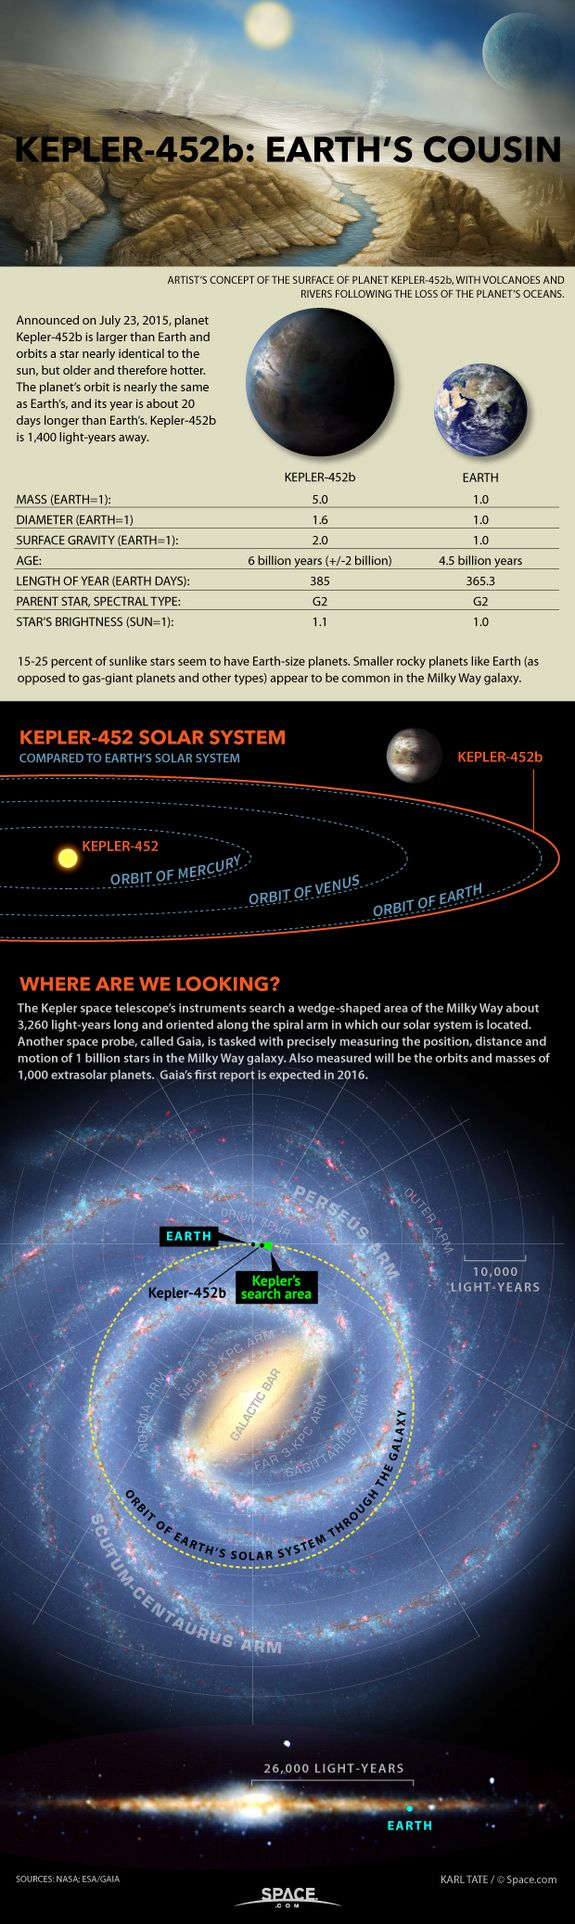 Earth's Cousin Found: All About Exoplanet Kepler-452b (Infographic) By Karl Tate, Infographics Artist : Chart of properties of Kepler-452b.